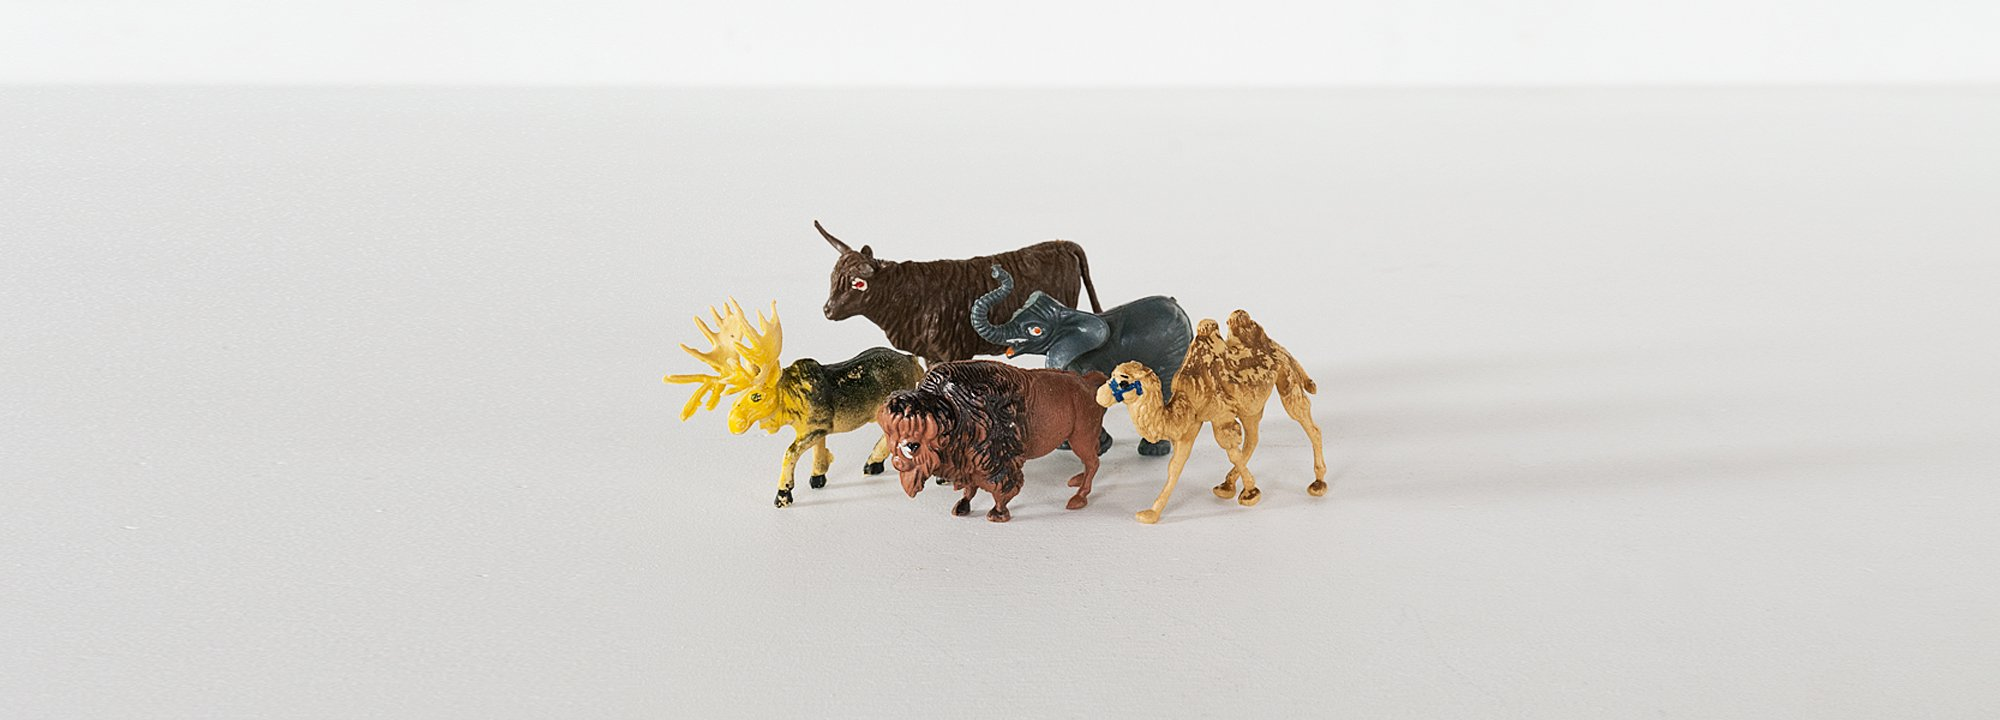 Vintage Object : Small Animals